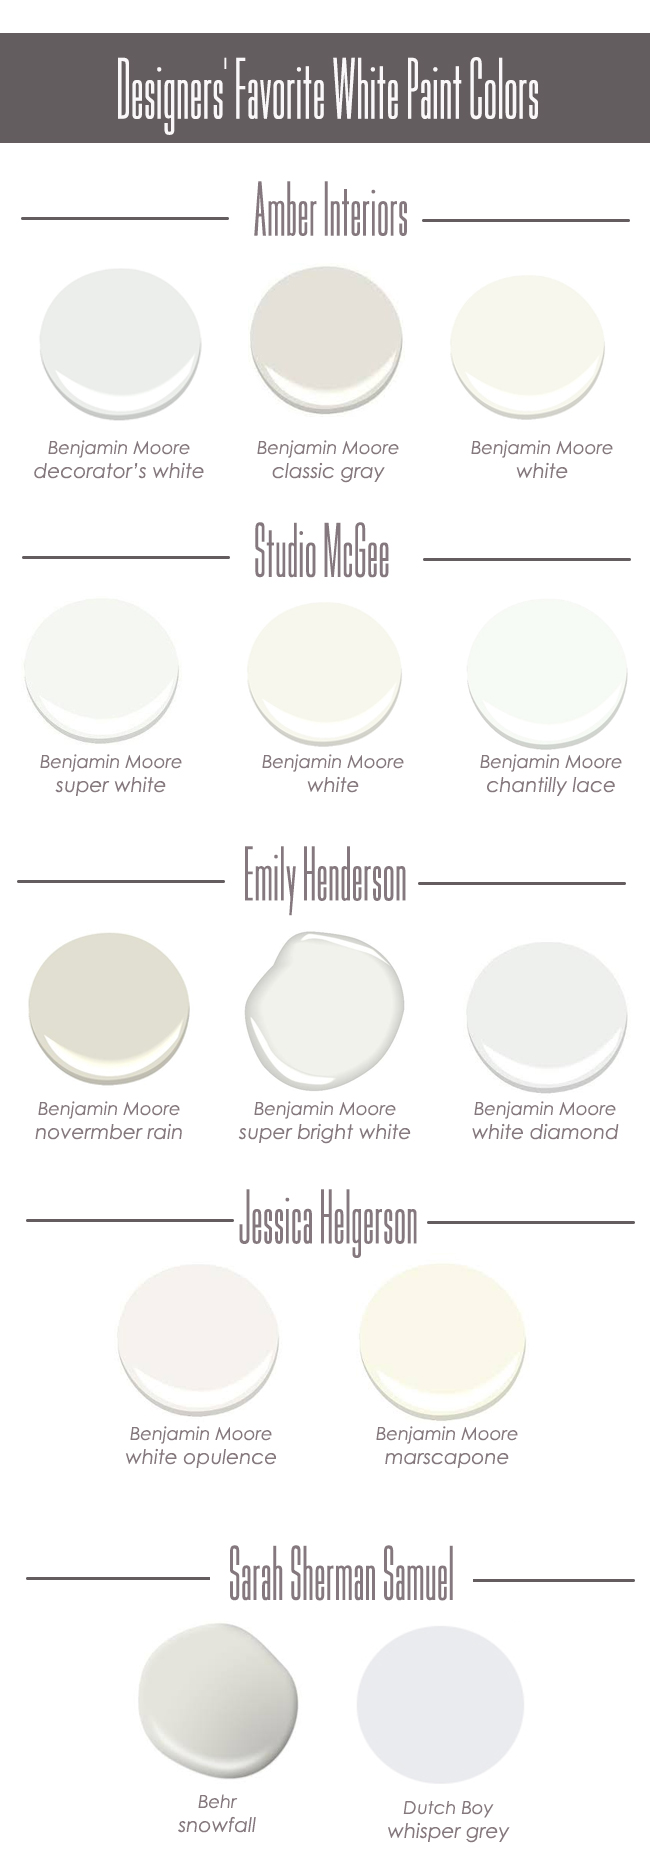 Designers' favorite white paint colors